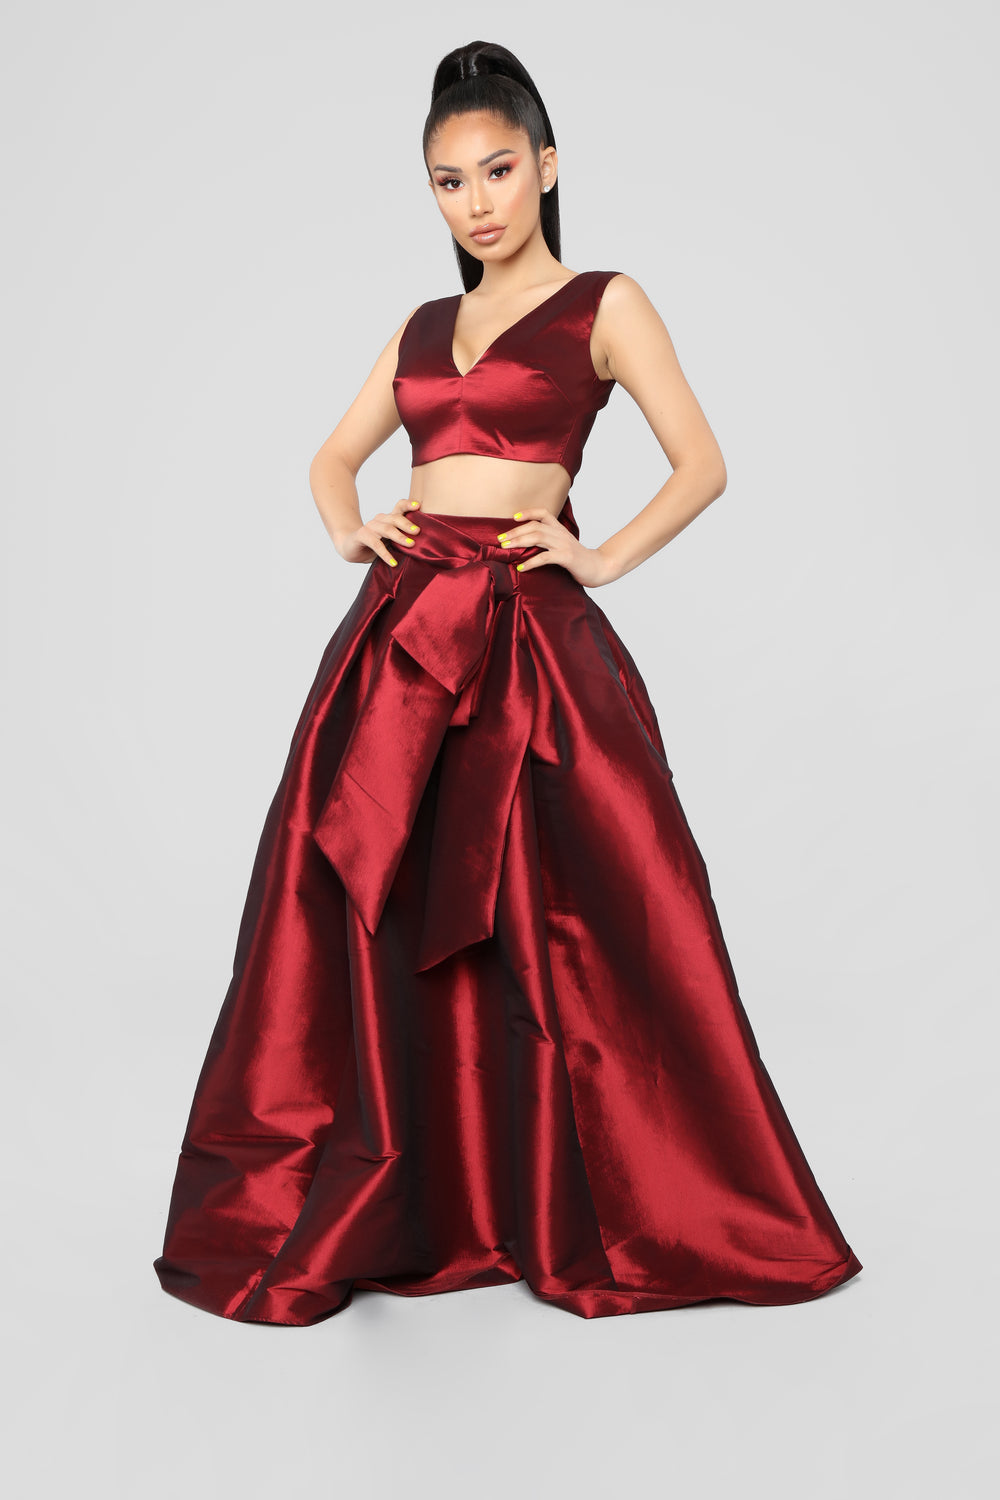 Just A Love Story Skirt Set - Wine